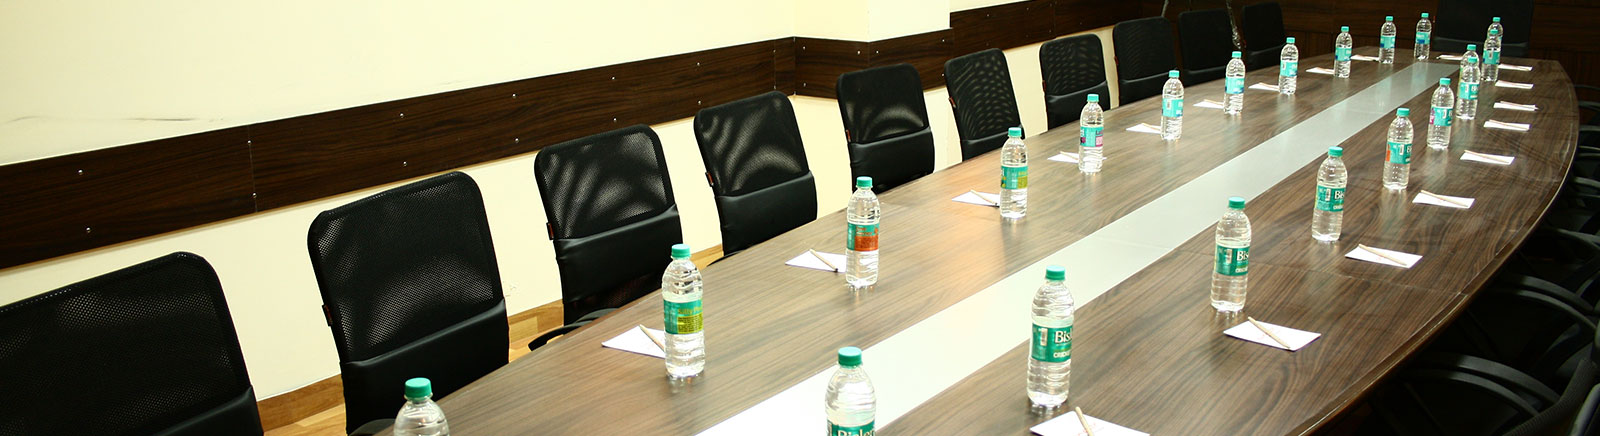 Ginger Manesar Hotel Services & Facilities